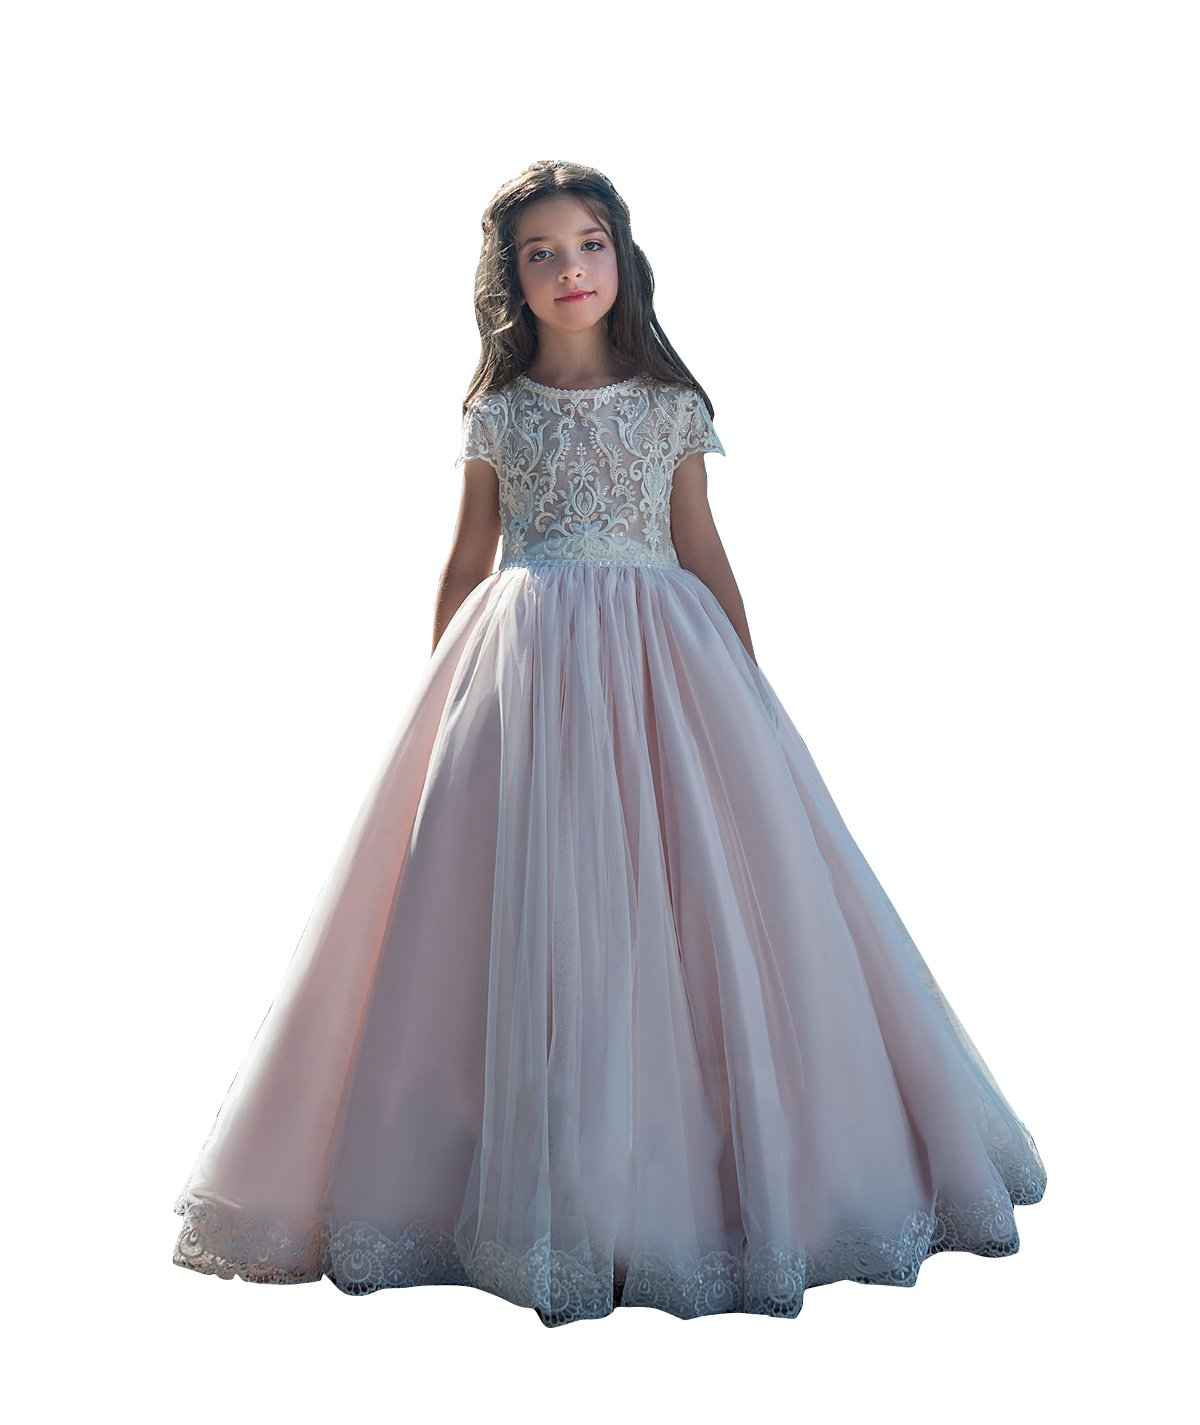 kelaixiang Long Lace Flower Girl Dresses Pink Less Party Dress For Wedding Party